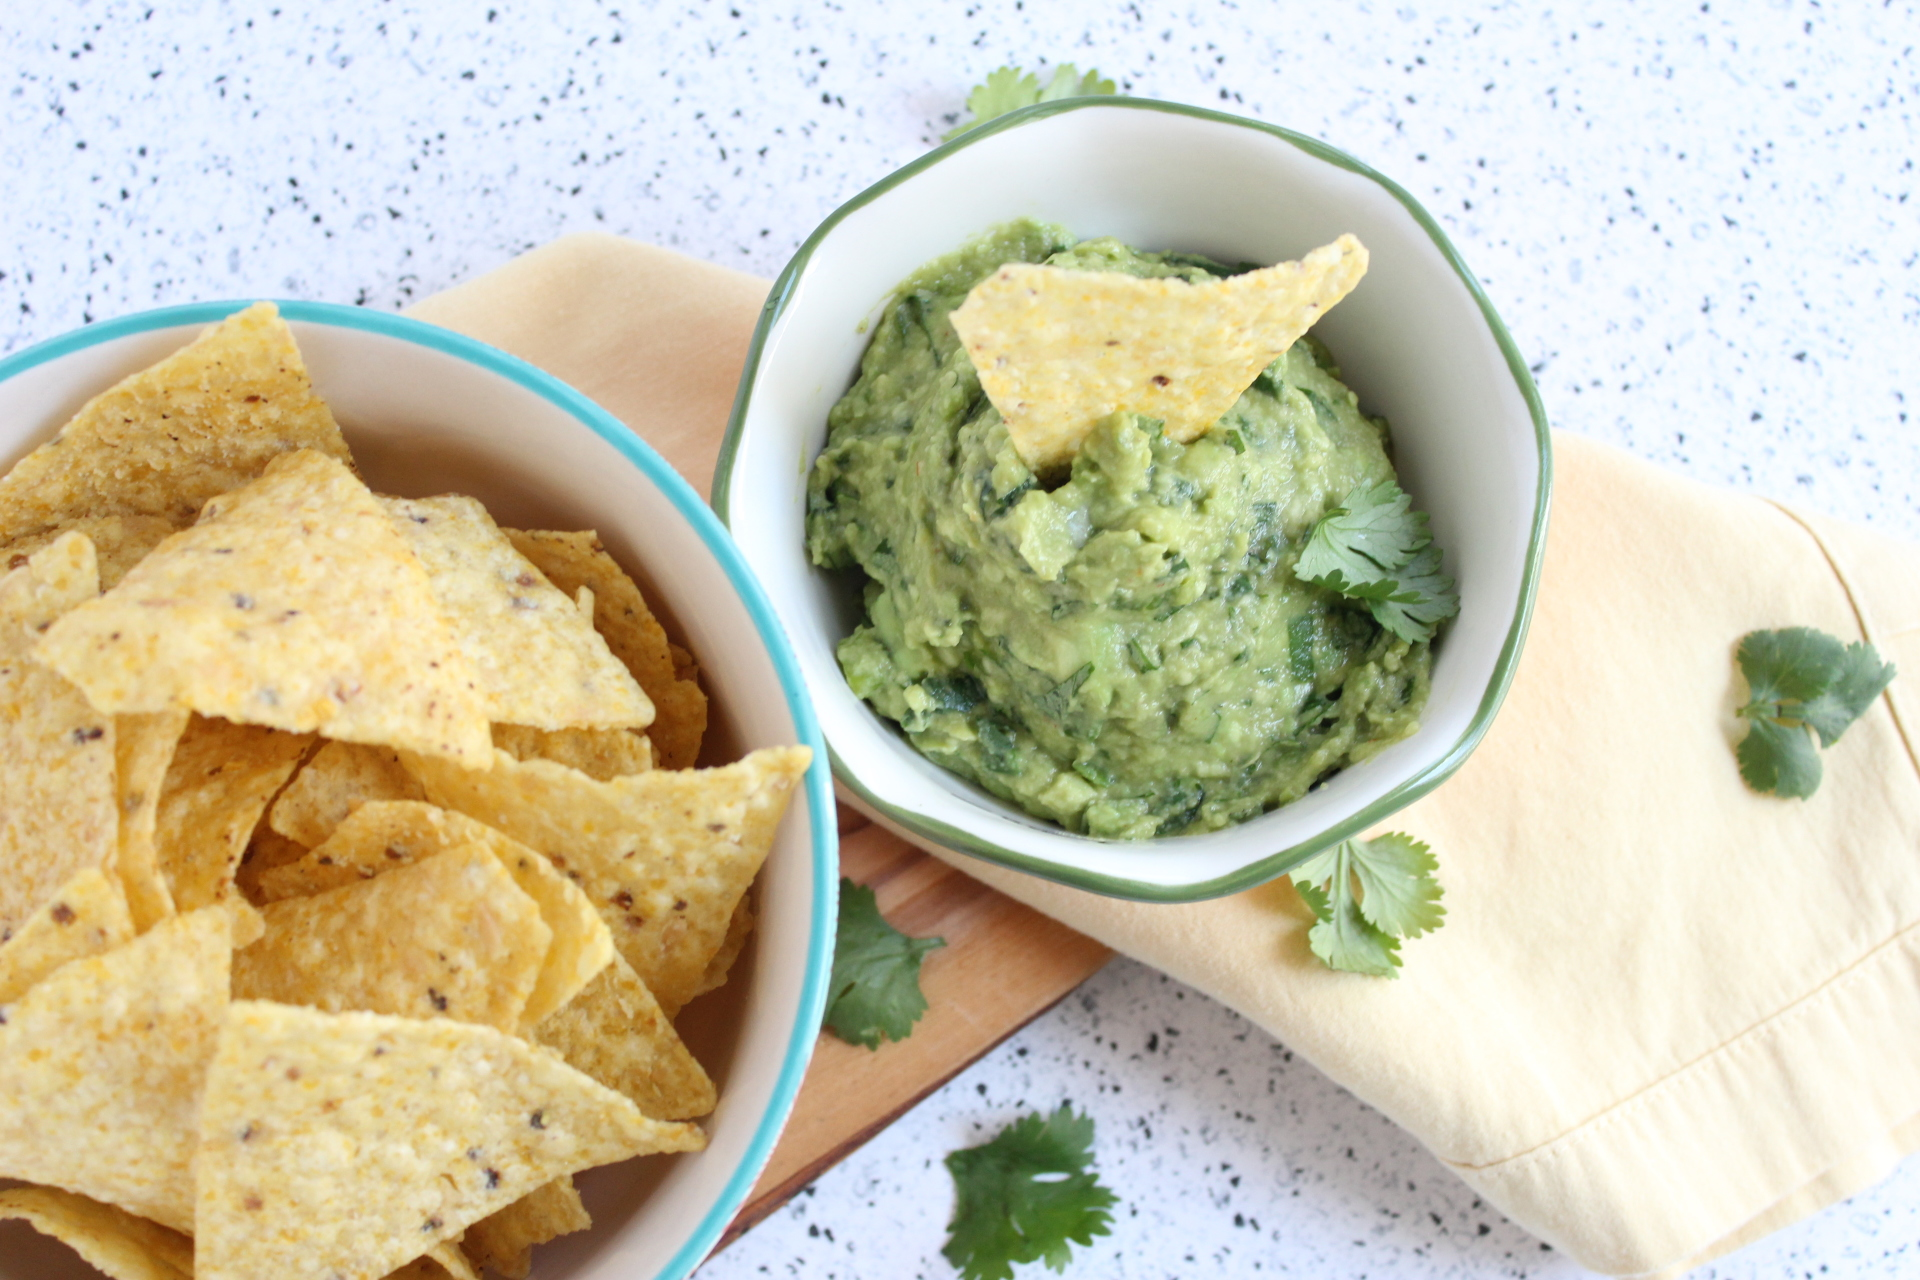 RECIPE: Quick N' Dirty Guac, Avocado Skin Masks